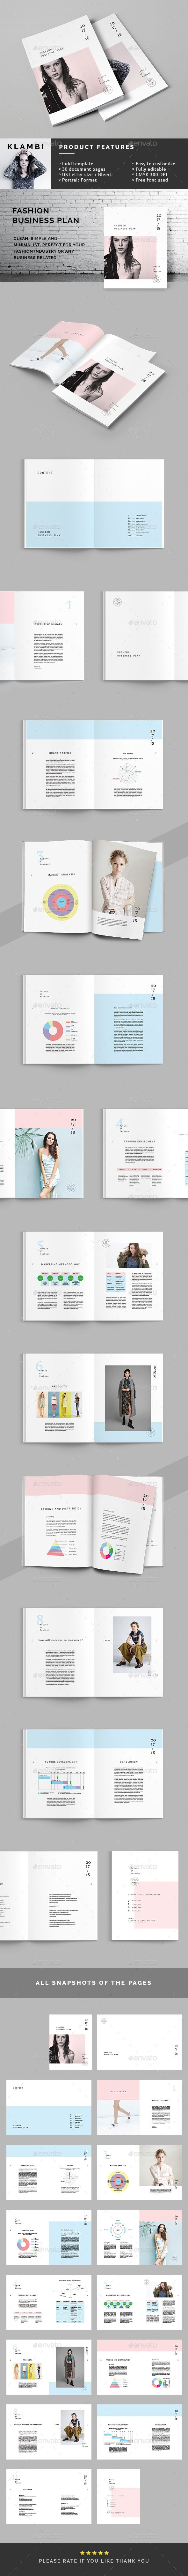 Fashion Business Plan Brochure Template 	InDesign INDD. Download here: https://graphicriver.net/item/fashion-business-plan/17034672?ref=ksioks